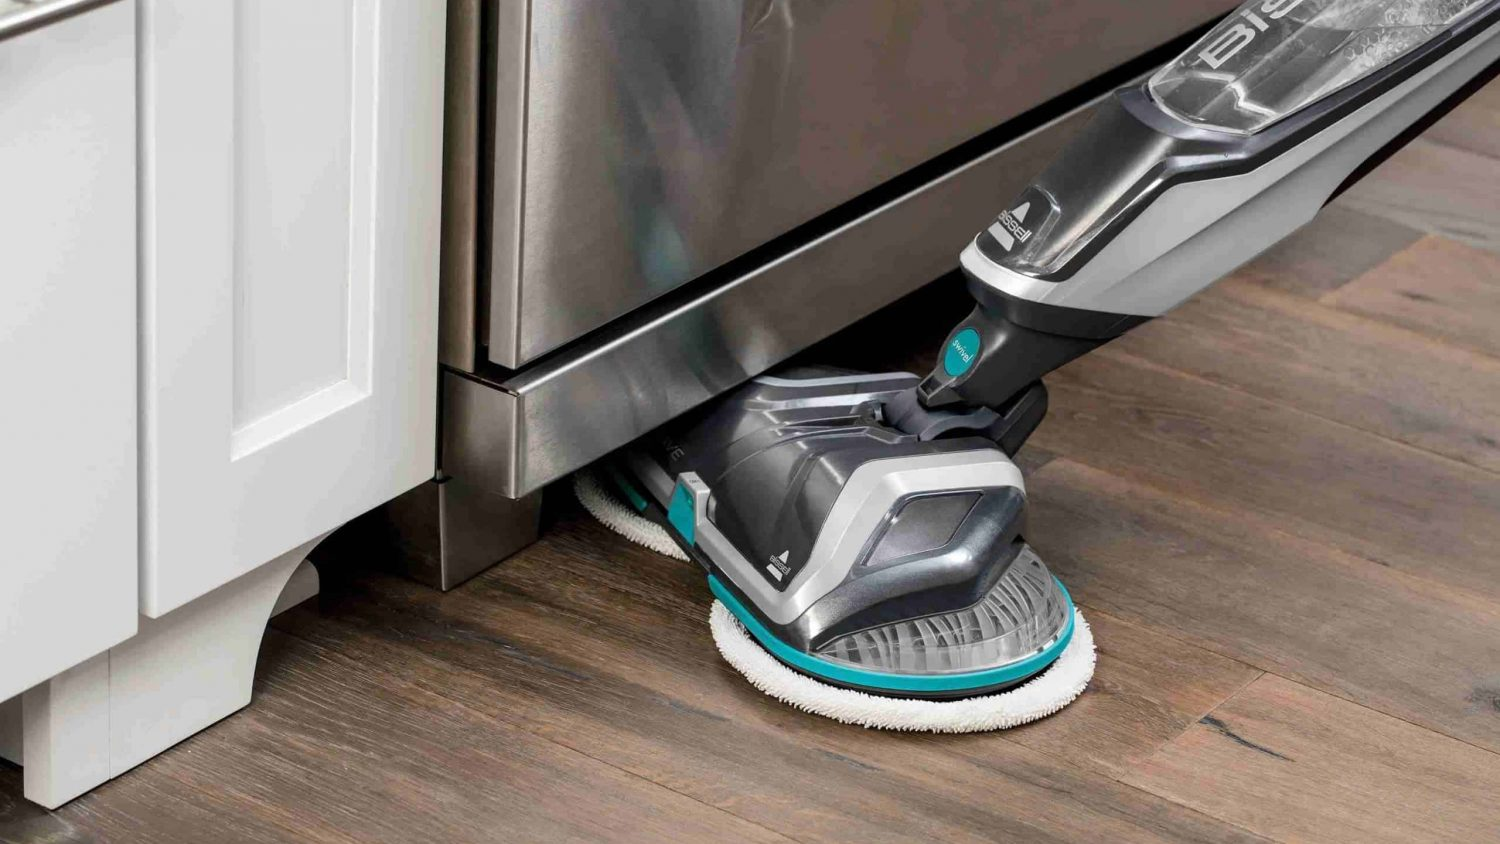 5 Best Steam Mop Models for a Spotless, Germ-Free Home